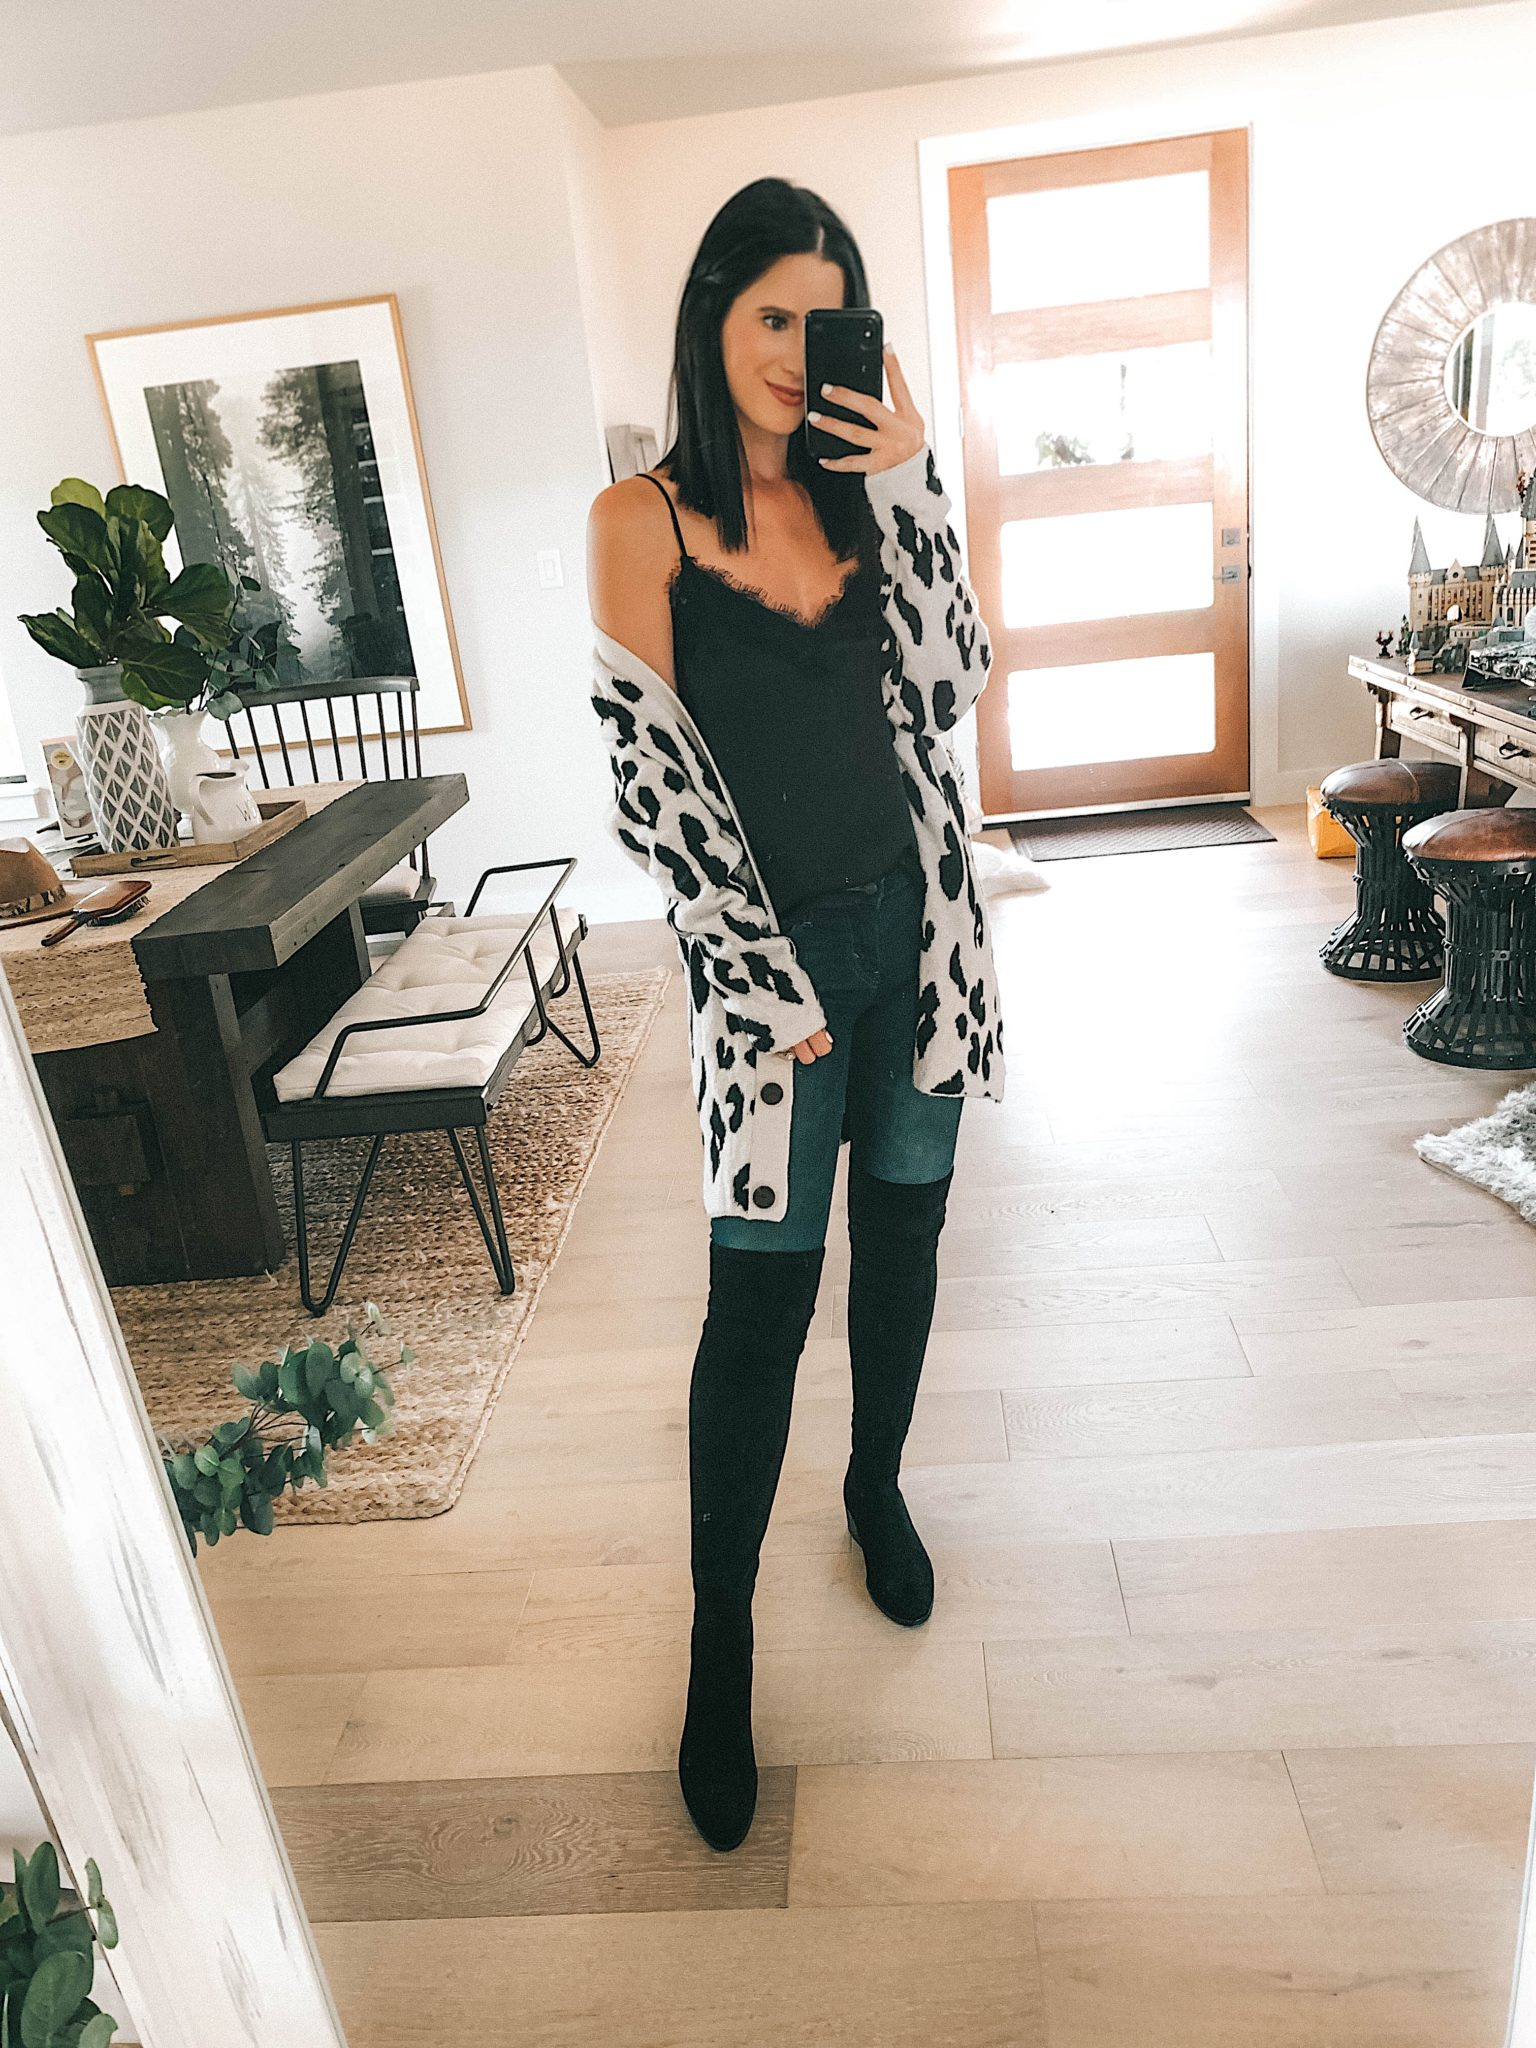 Create a Capsule Wardrobe with Nordstrom Anniversary Sale Pieces by popular Austin fashion blog, Dressed to Kill: image of a woman standing in her house and wearing a Nordstrom leopard print cardigan, BP. lace cami, and Steve Madden over the knee boots.